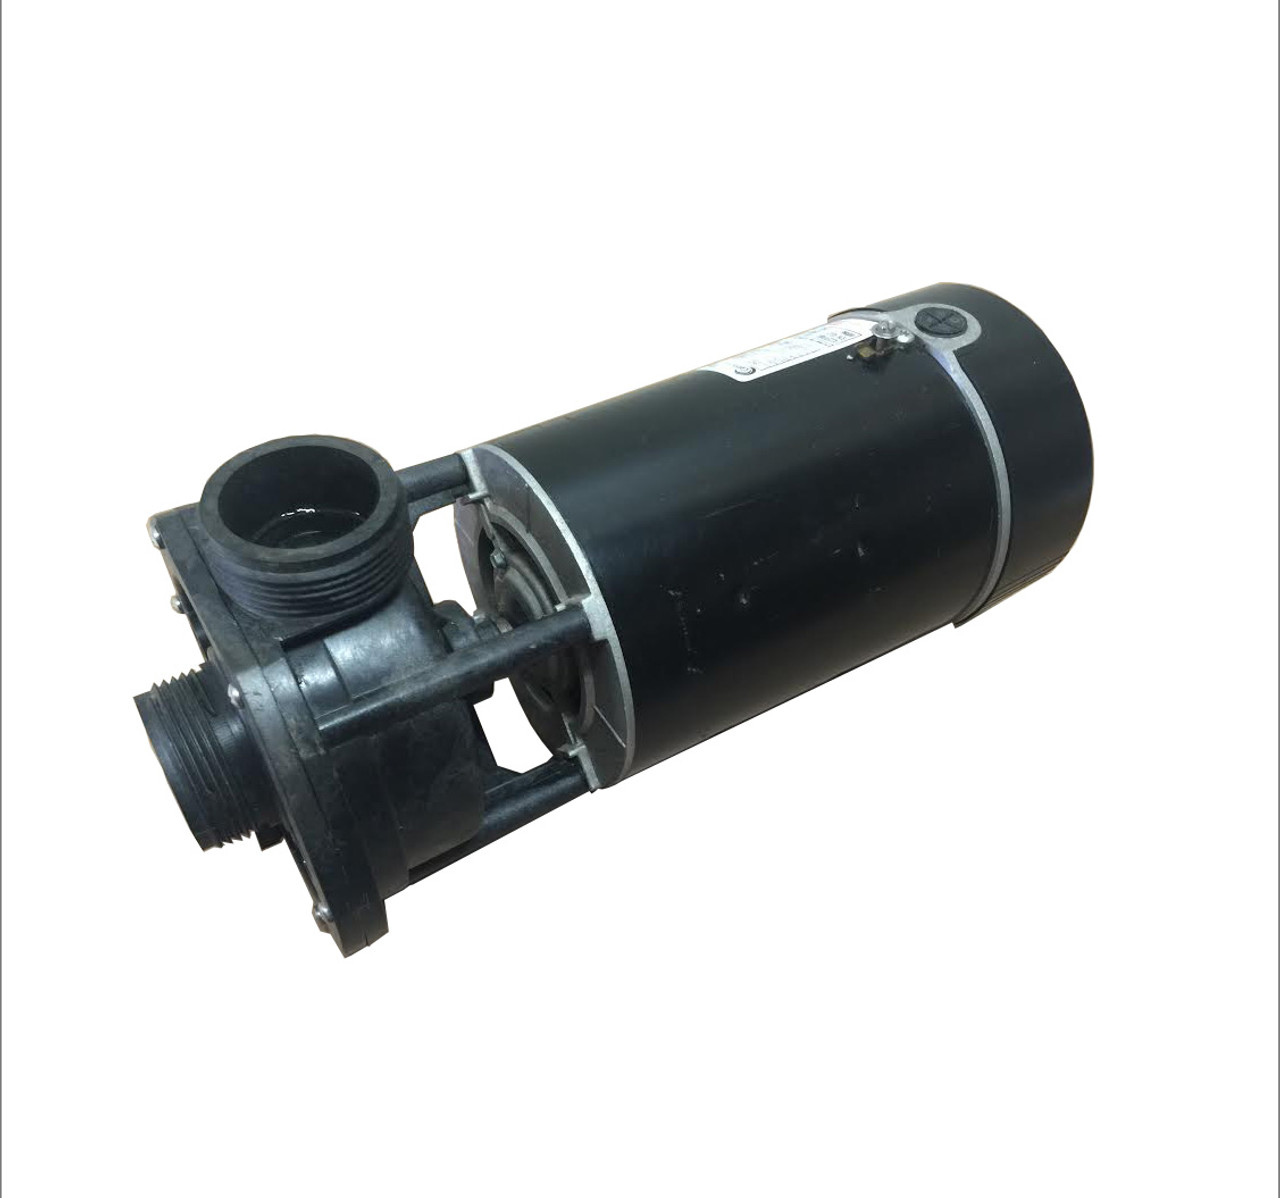 small resolution of replacement for softub hot tub pump 115 volt 03510138 2 spa parts depot